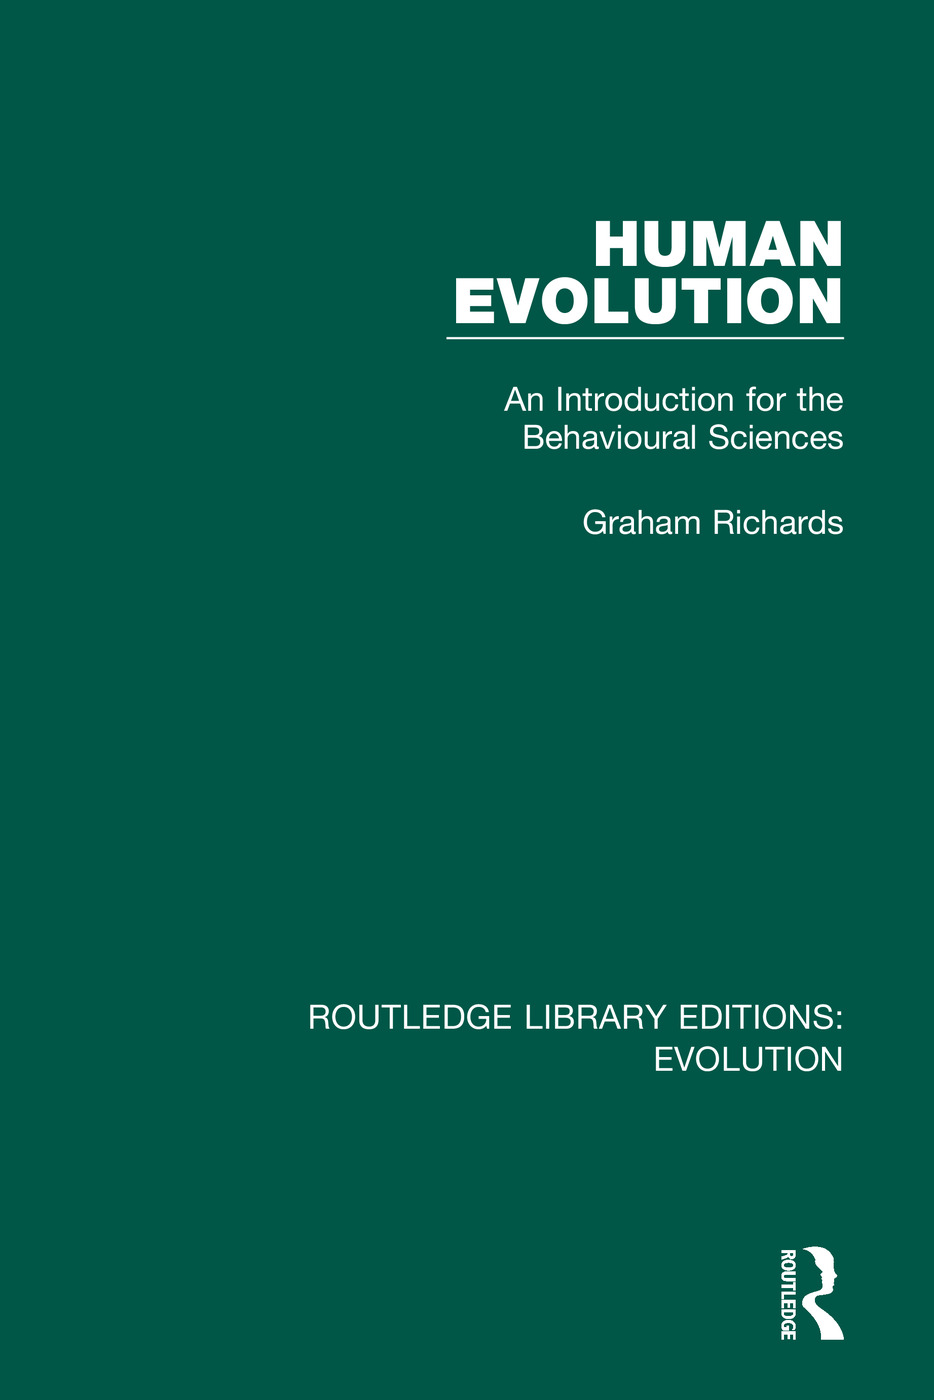 Human Evolution: An Introduction for the Behavioural Sciences book cover